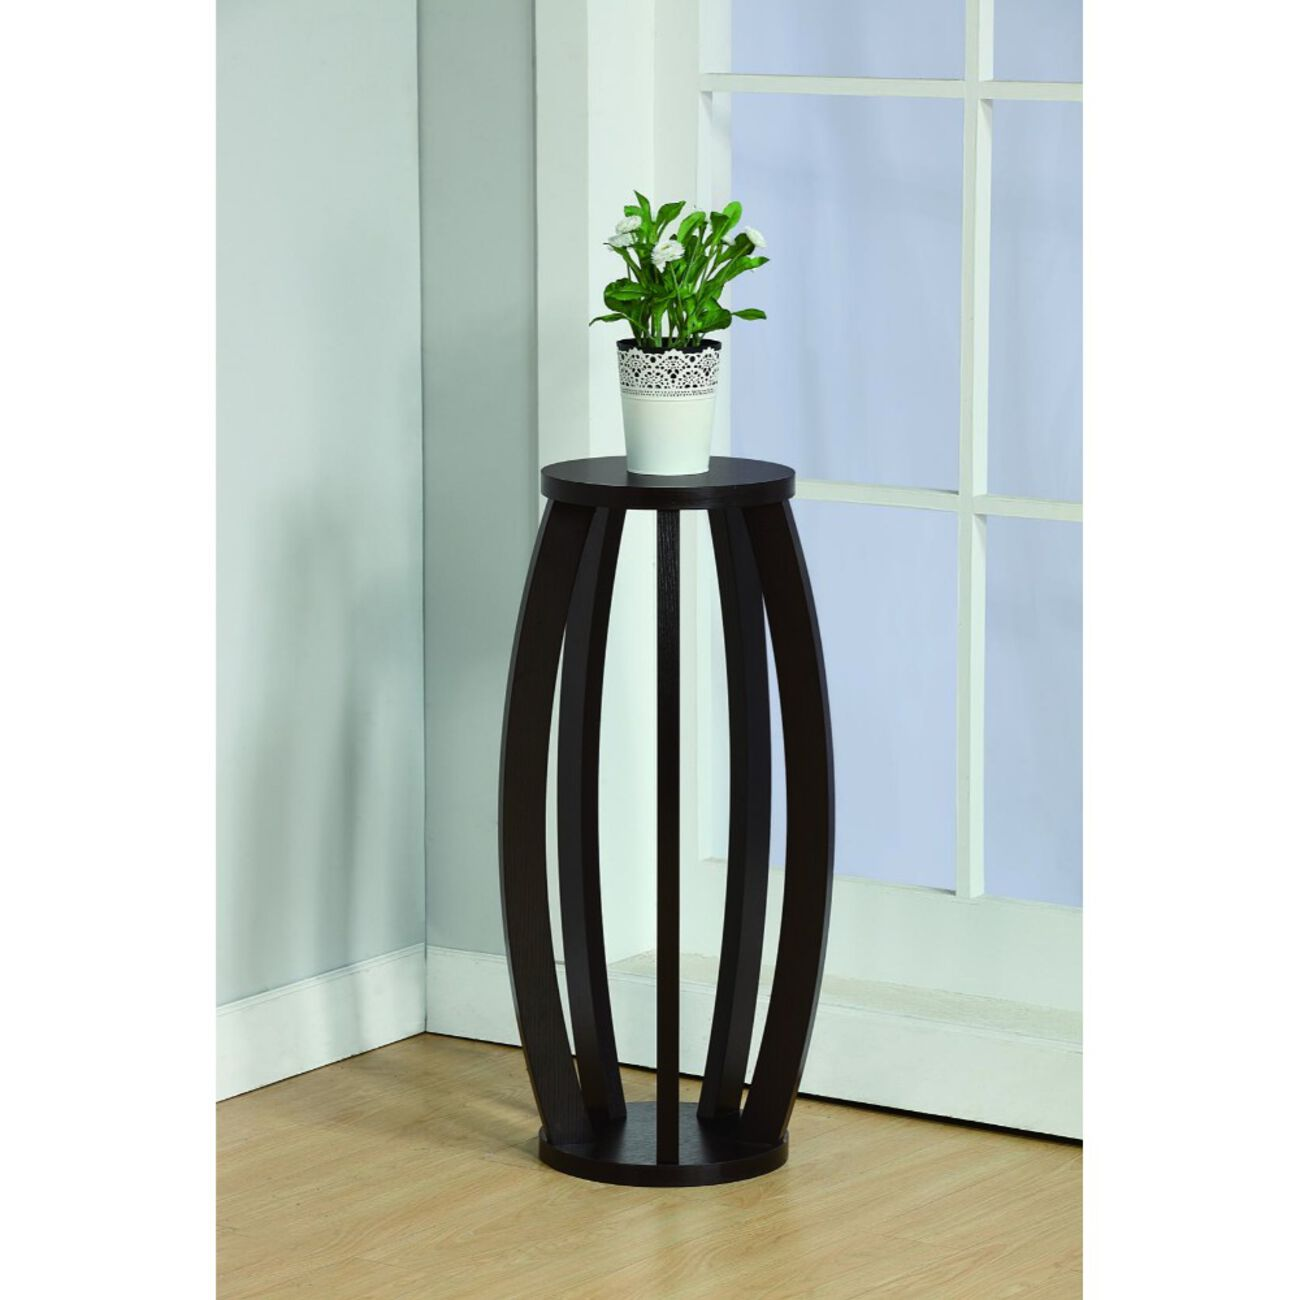 Modern Plant Stand With Curve Legs, Brown